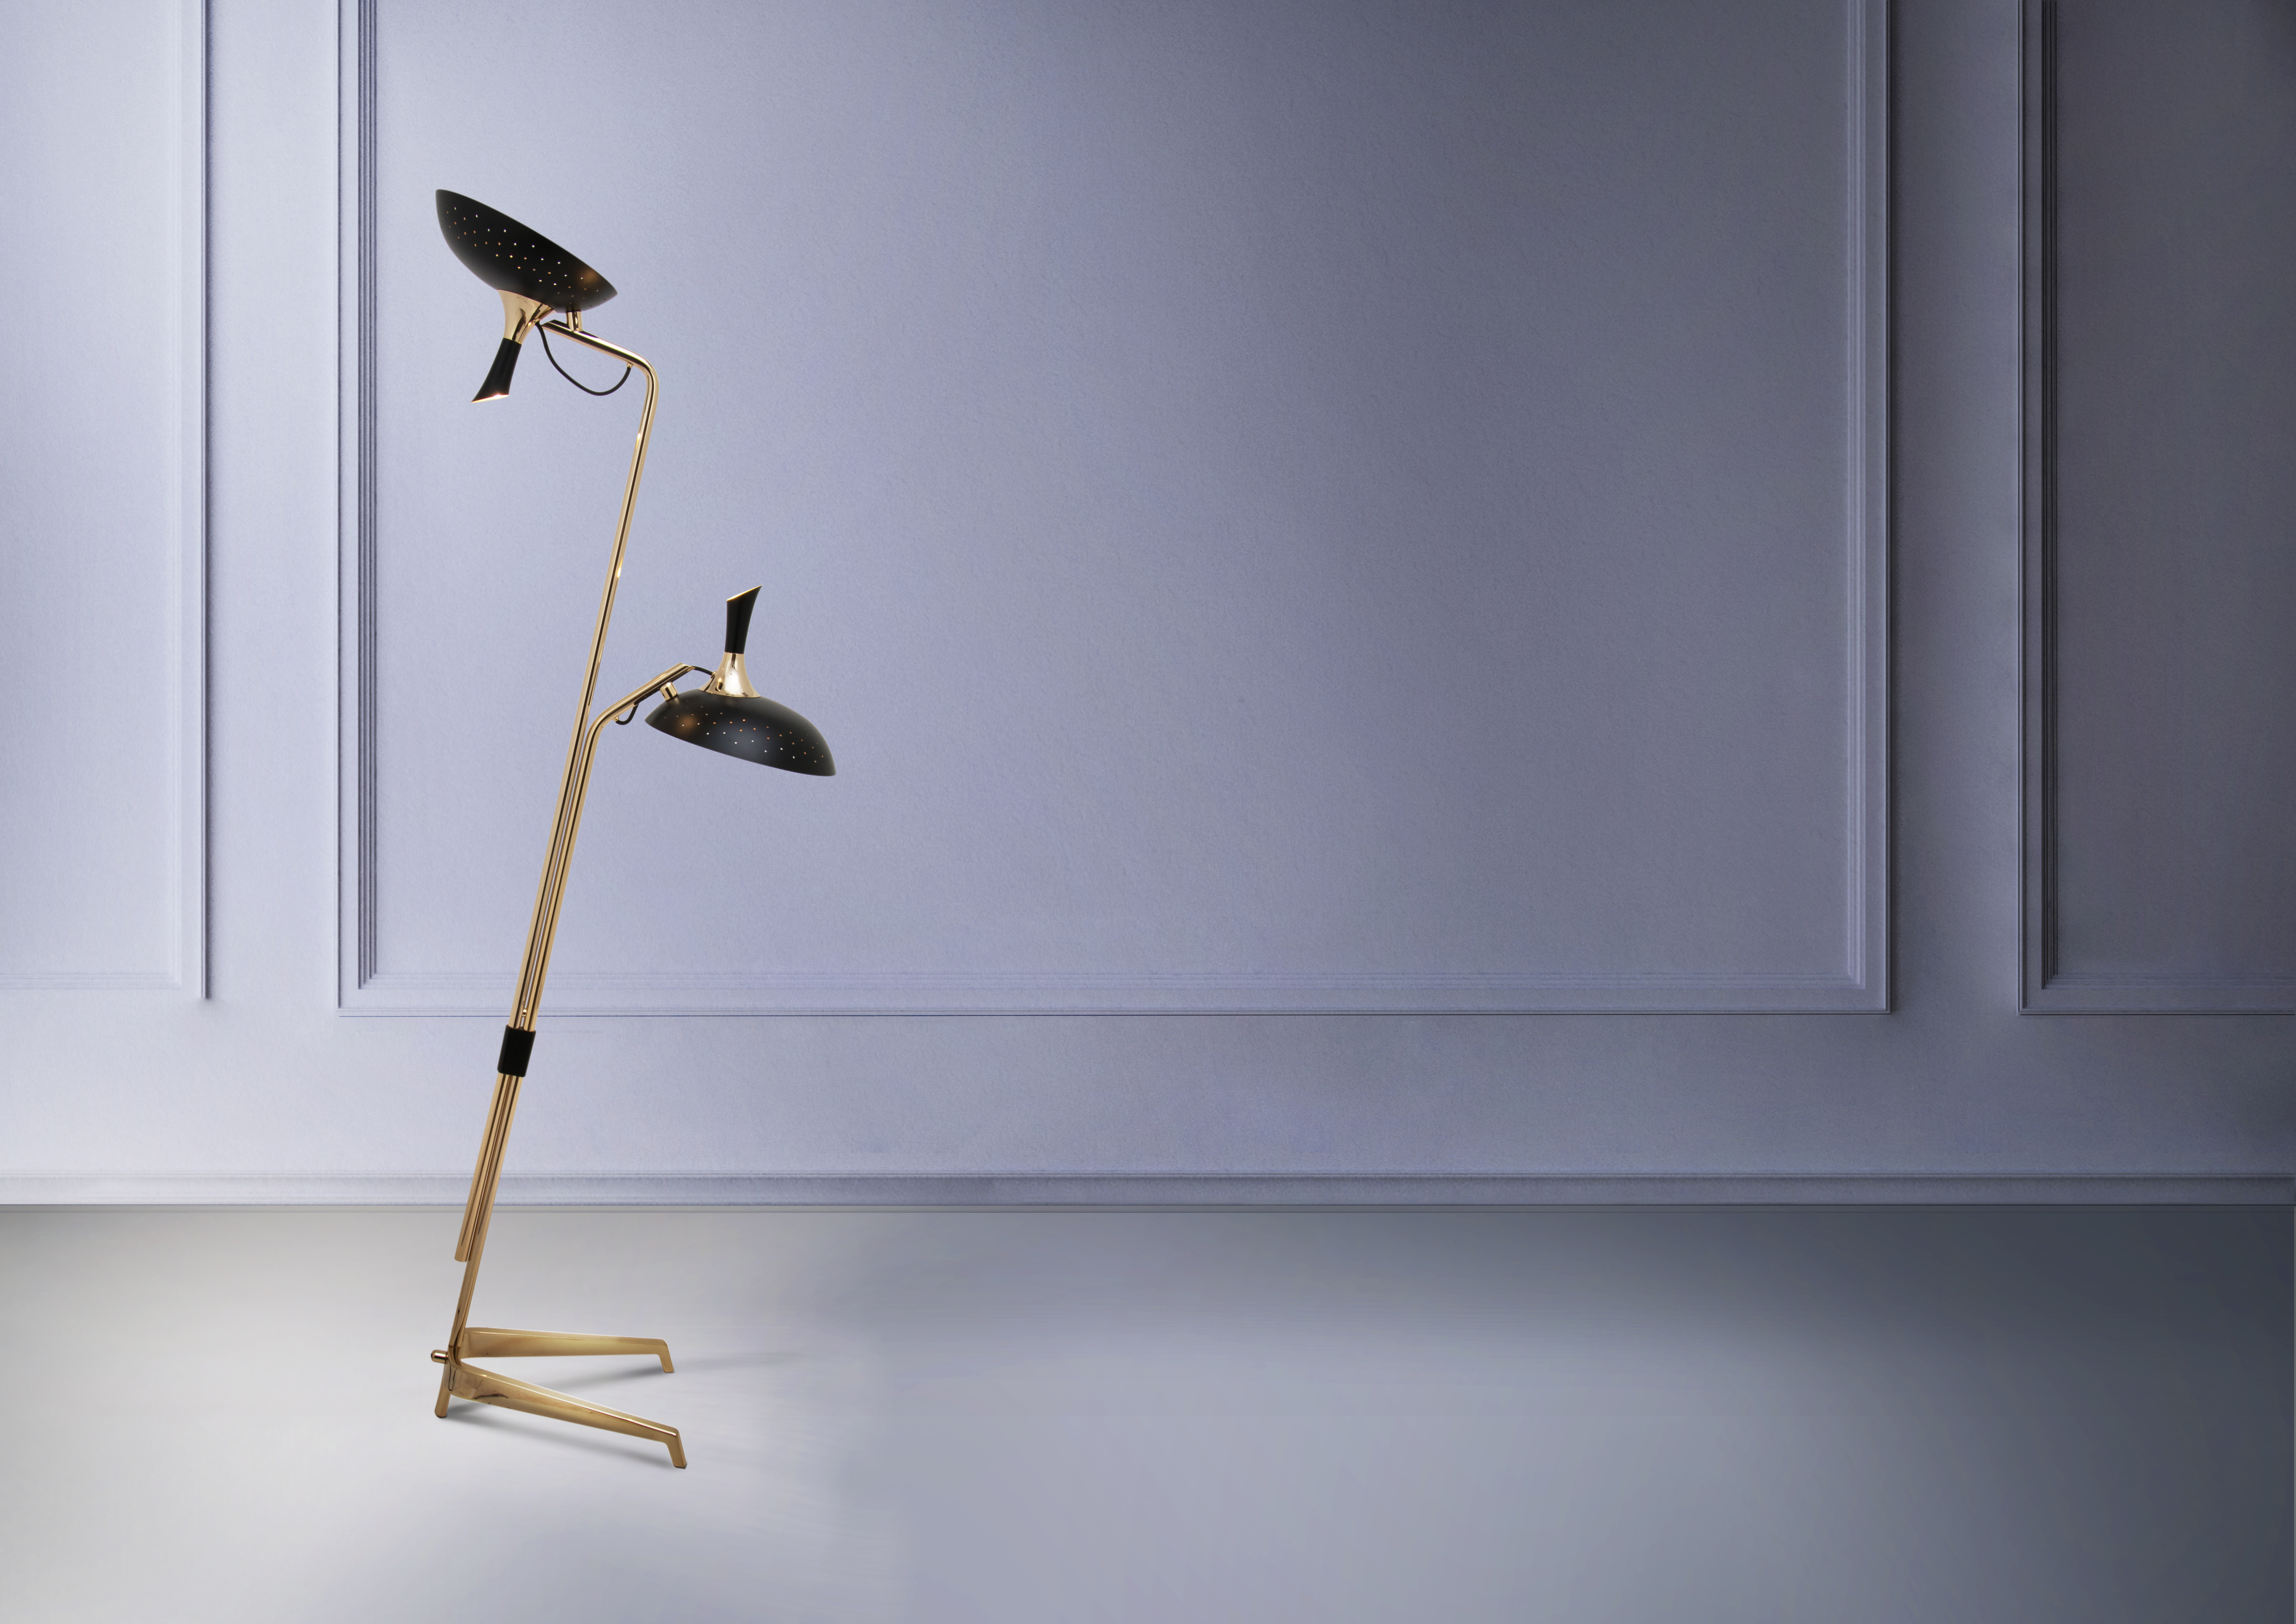 handmade floor lamps Handmade Floor Lamps Is What's Hot On Pinterest! Interior Design Furniture Pieces From Around the Globe2 1